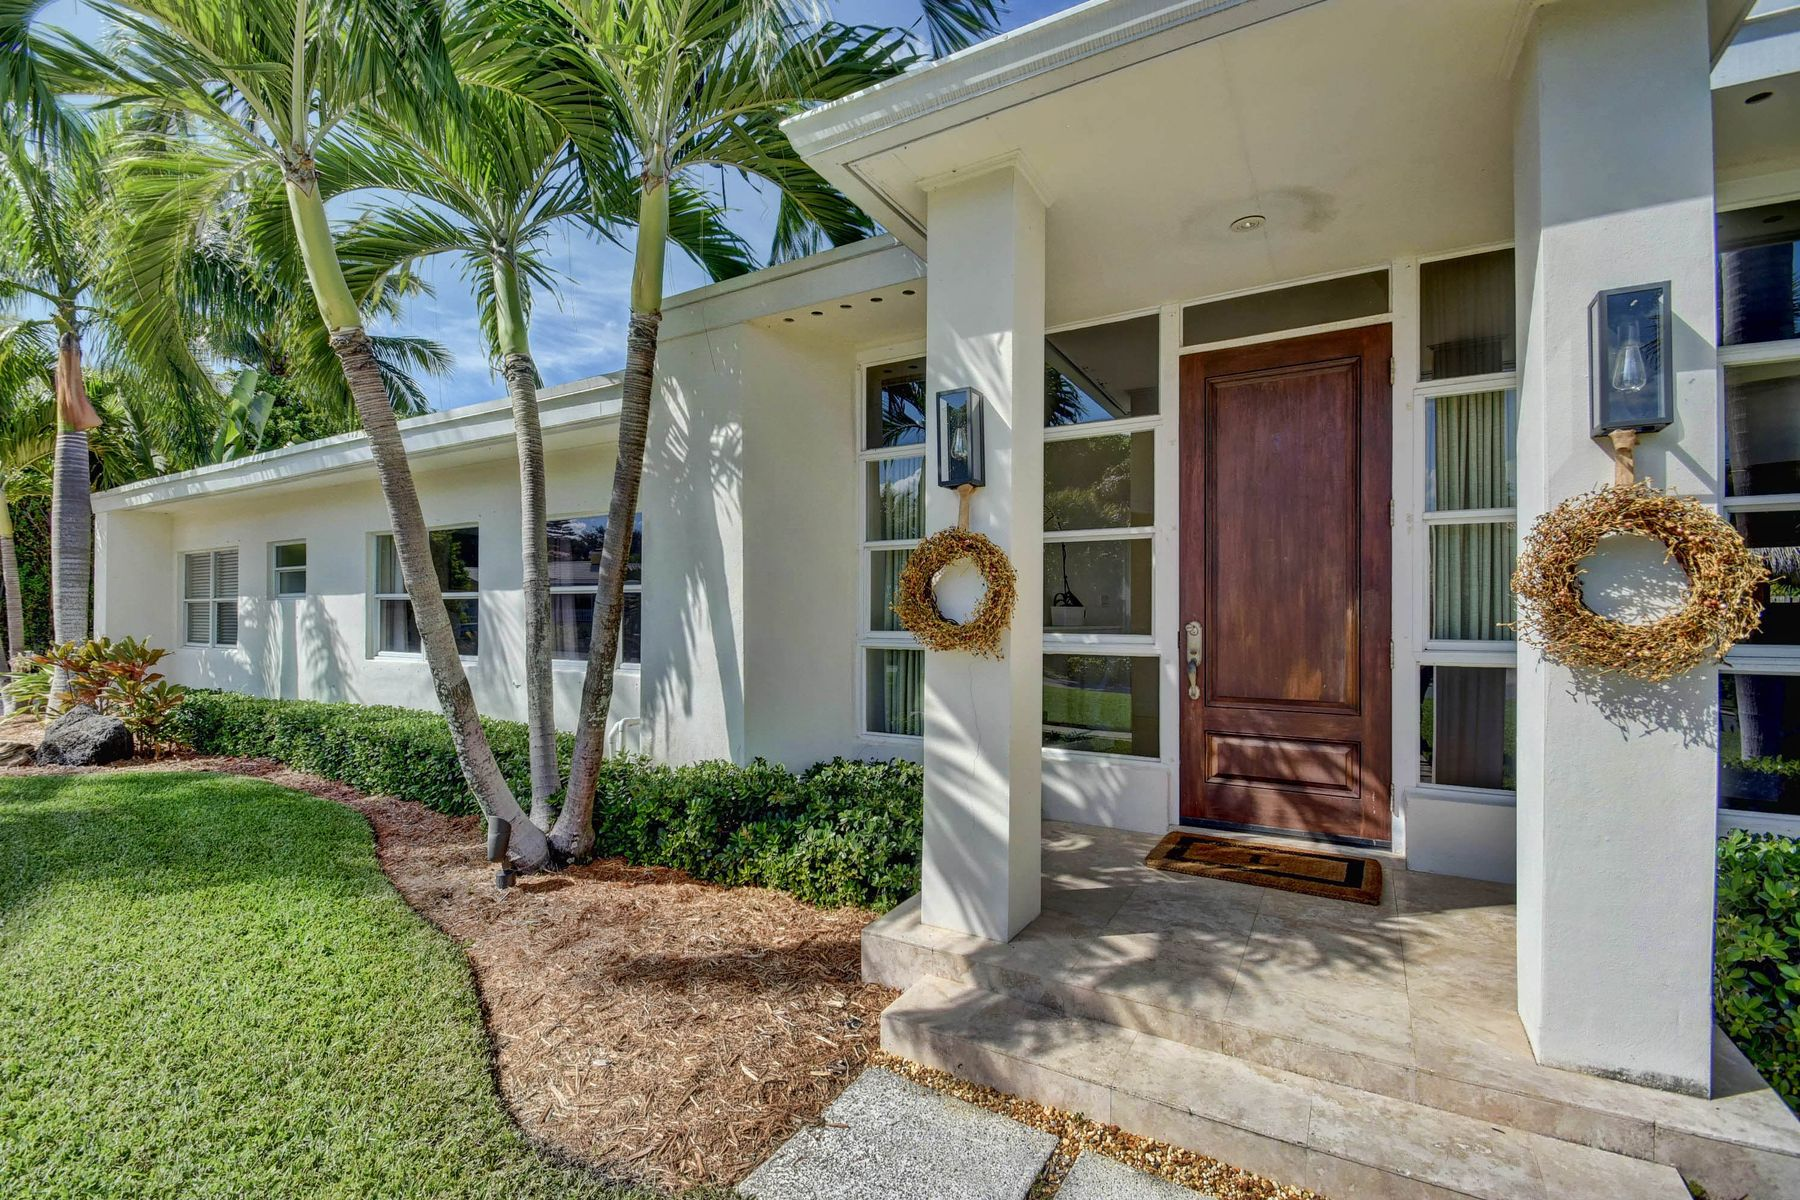 Single Family Home for Active at 135 Churchill Road 135 Churchill Rd West Palm Beach, Florida 33405 United States